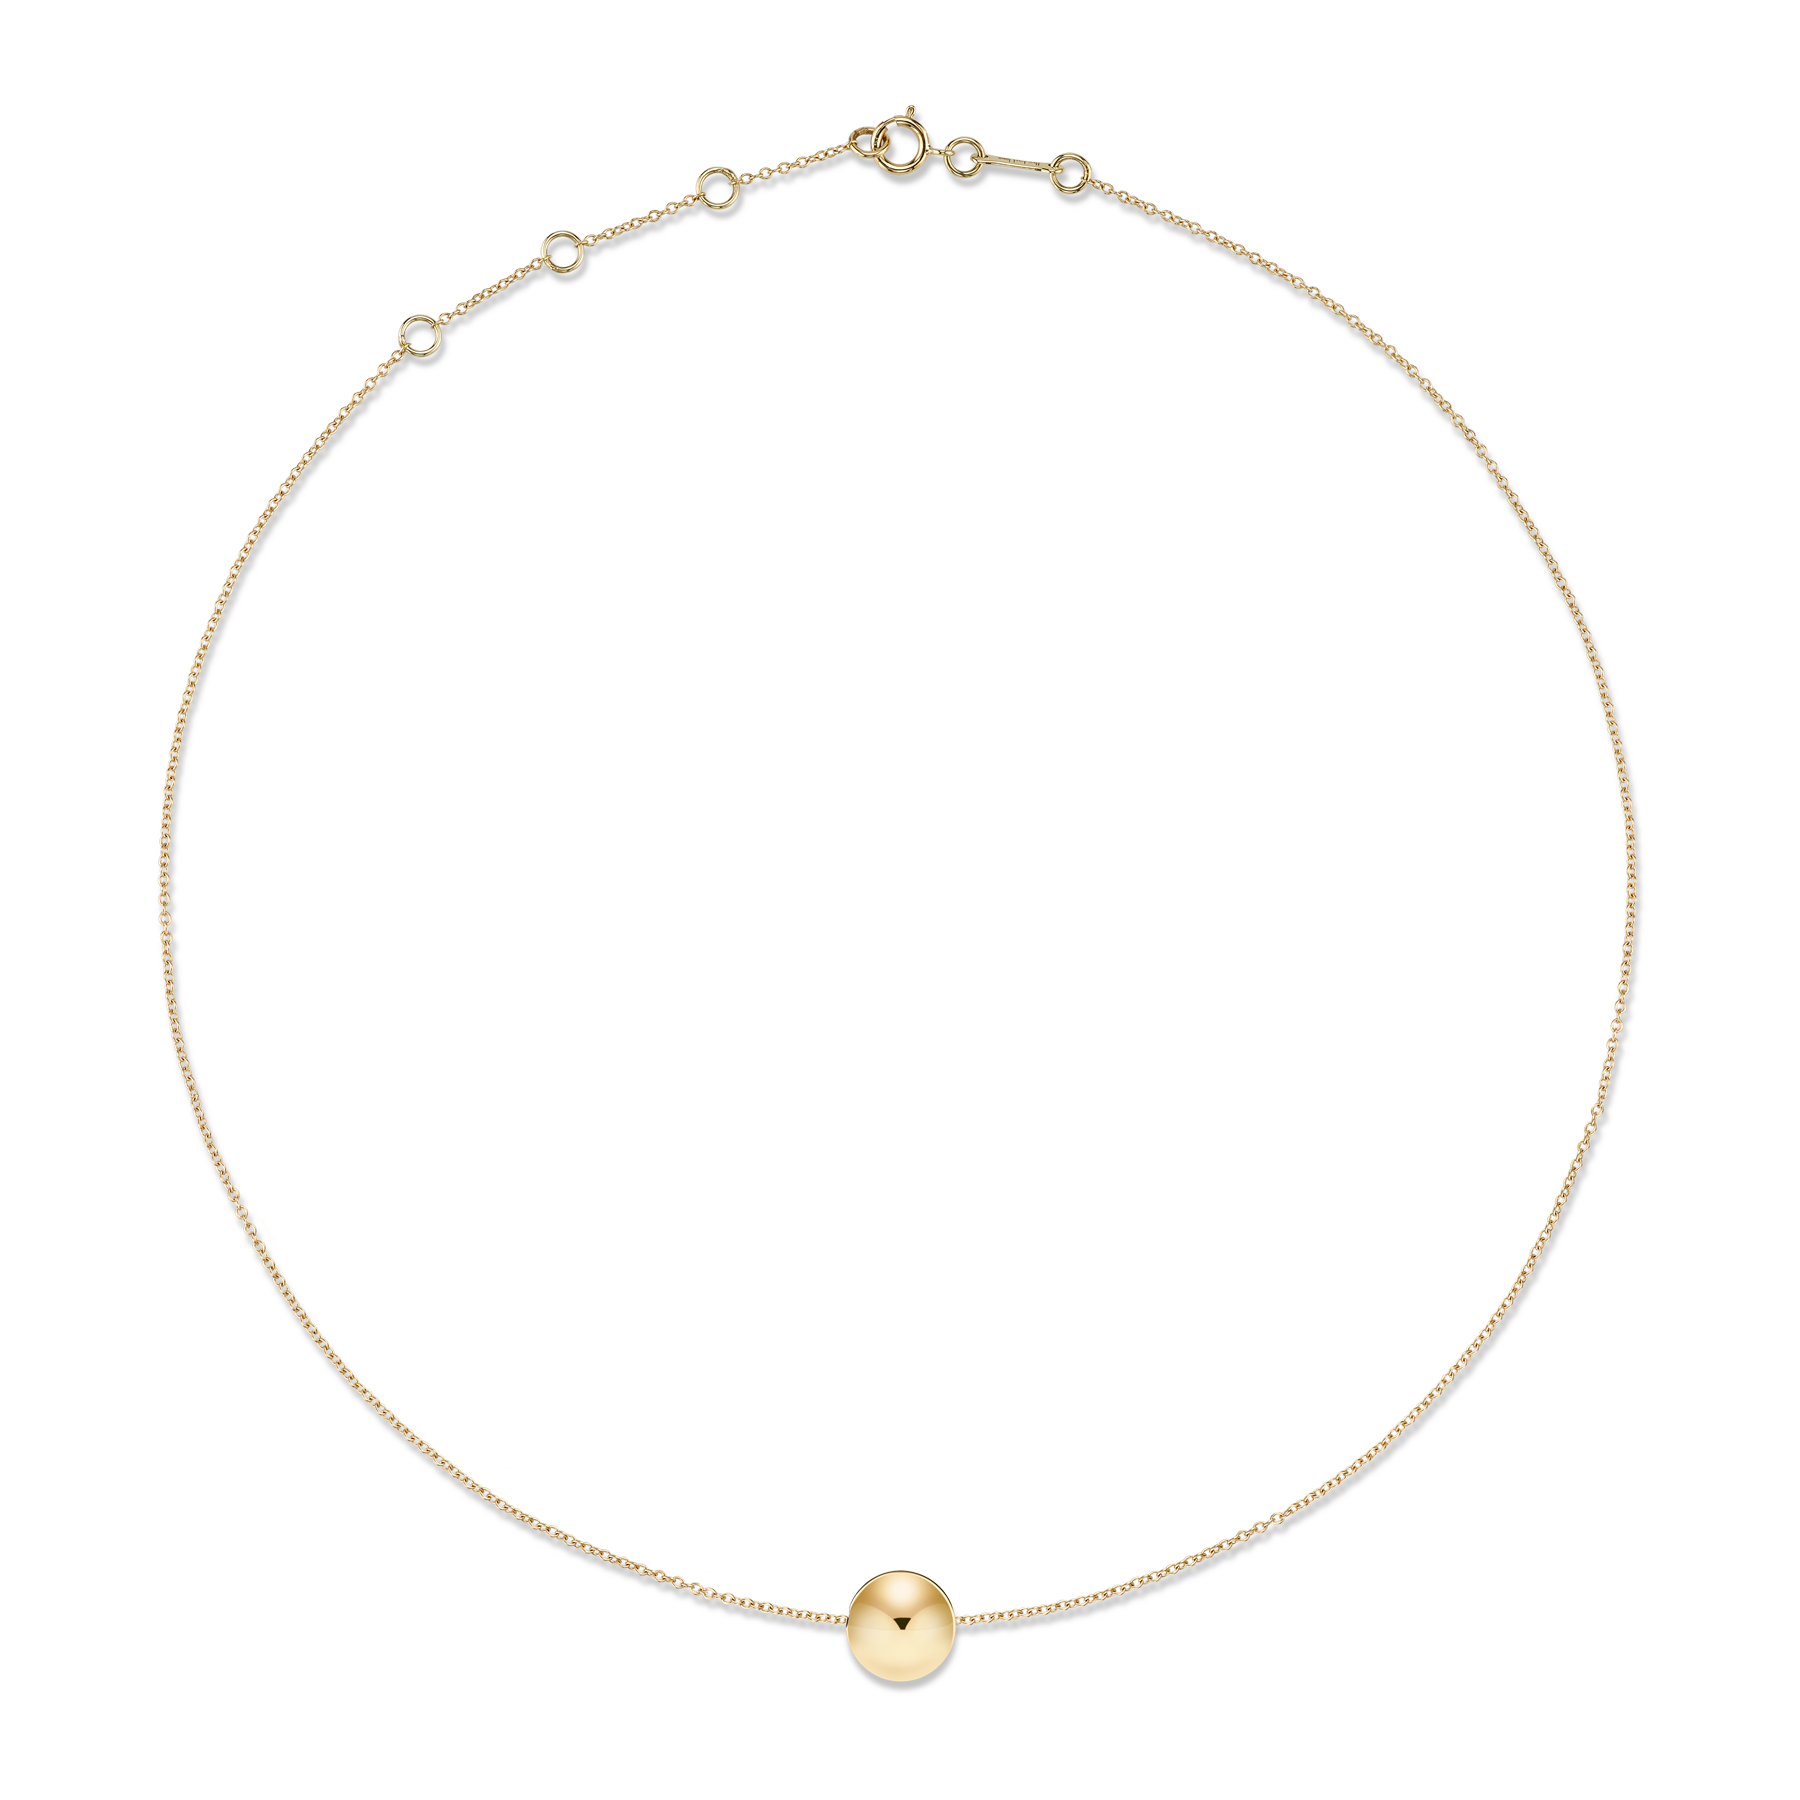 GOLD LARGE SPHERE NECKLACE